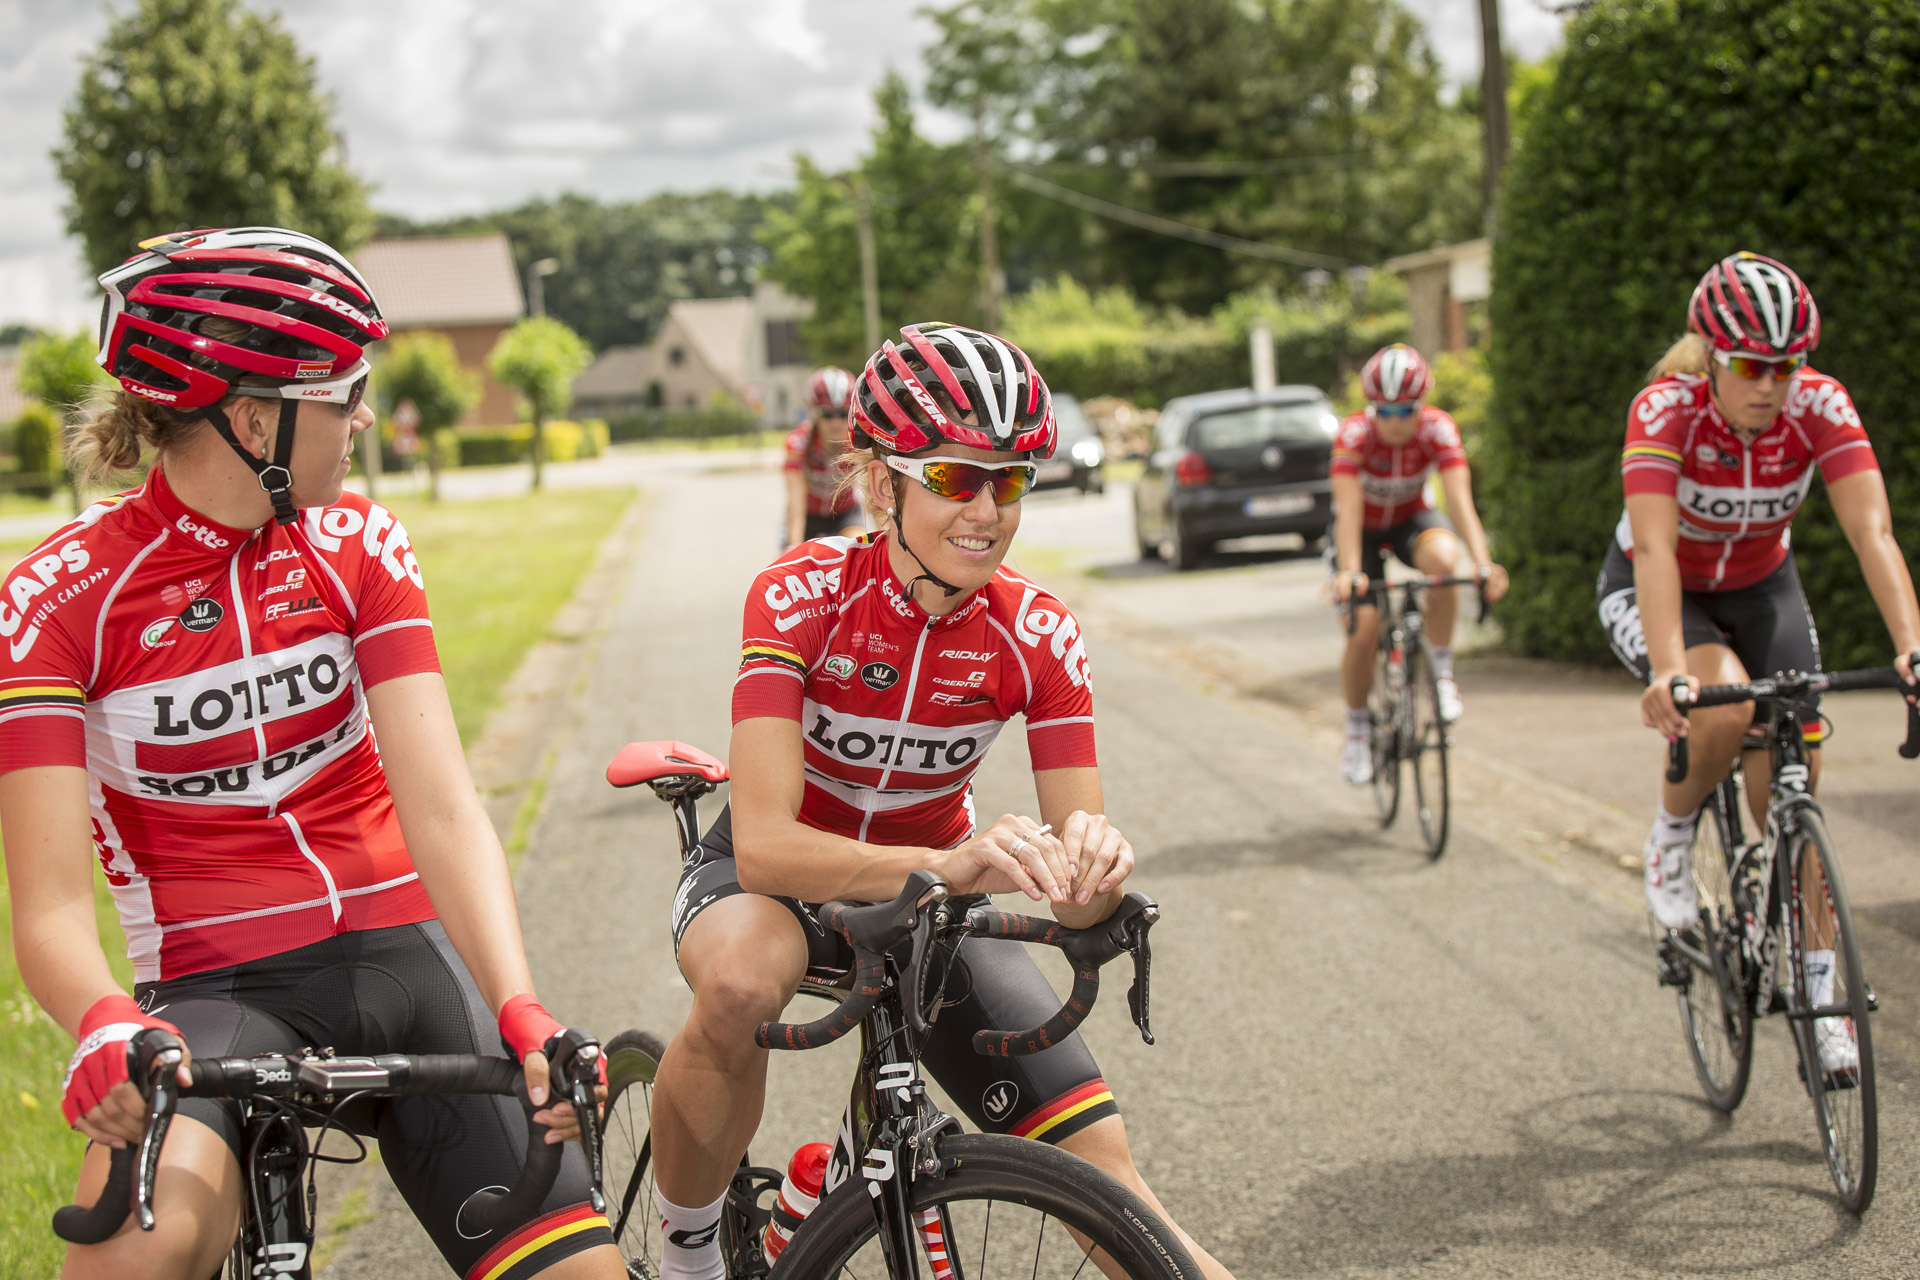 Lotto Soudal Cycling Team - Home Facebook